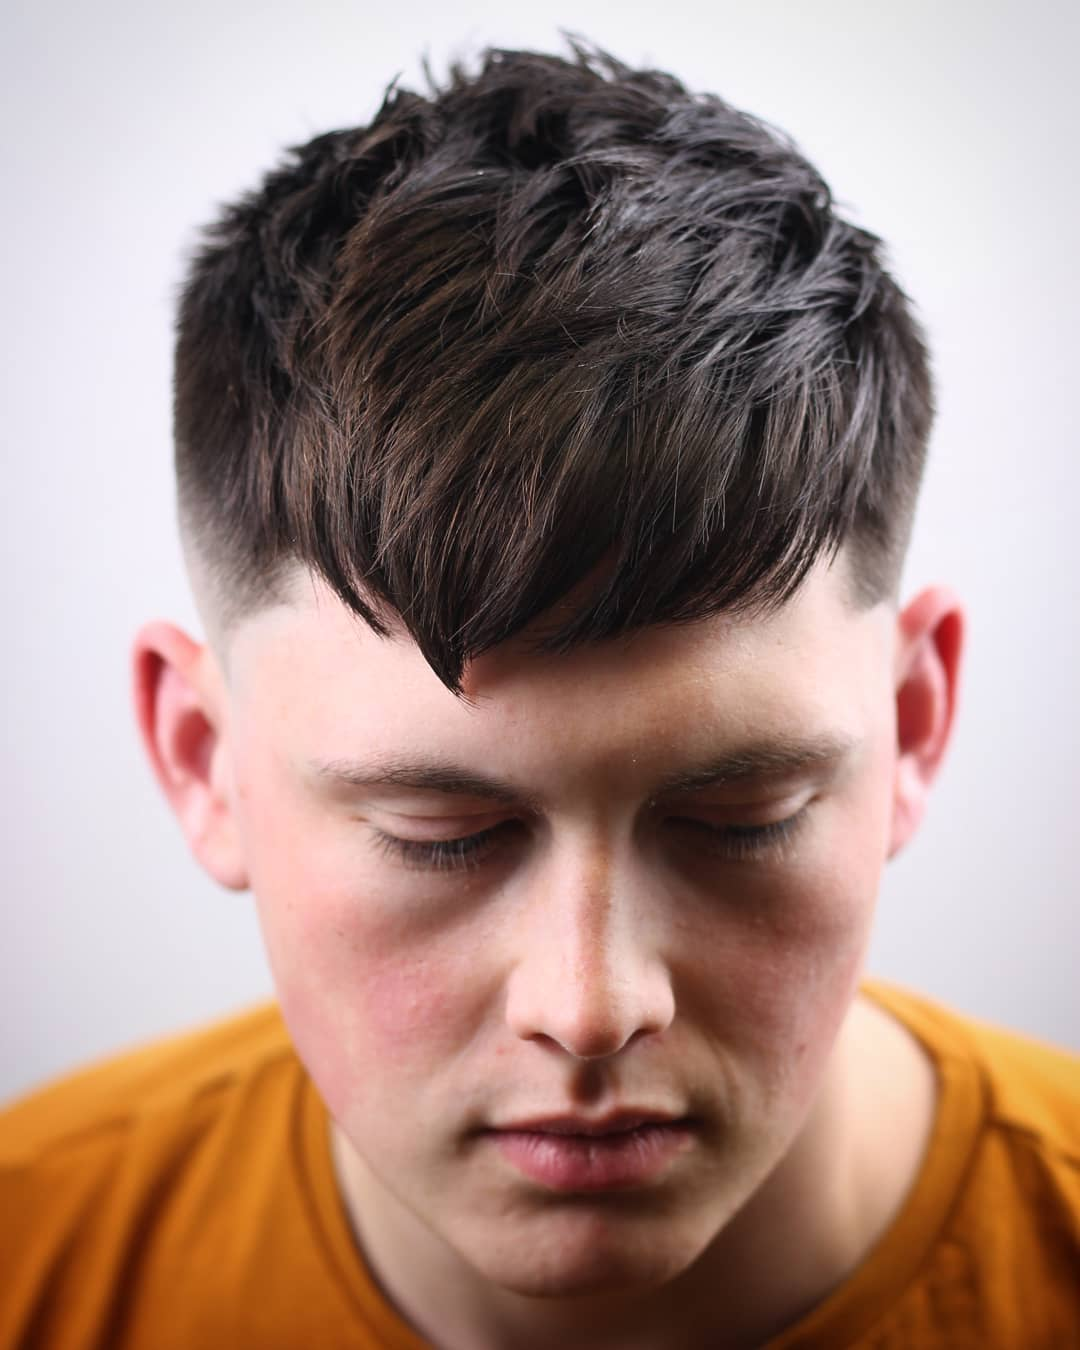 Best Men's Hairstyles of 2018 + New Looks for 2019 | Men's Hairstyle Trends